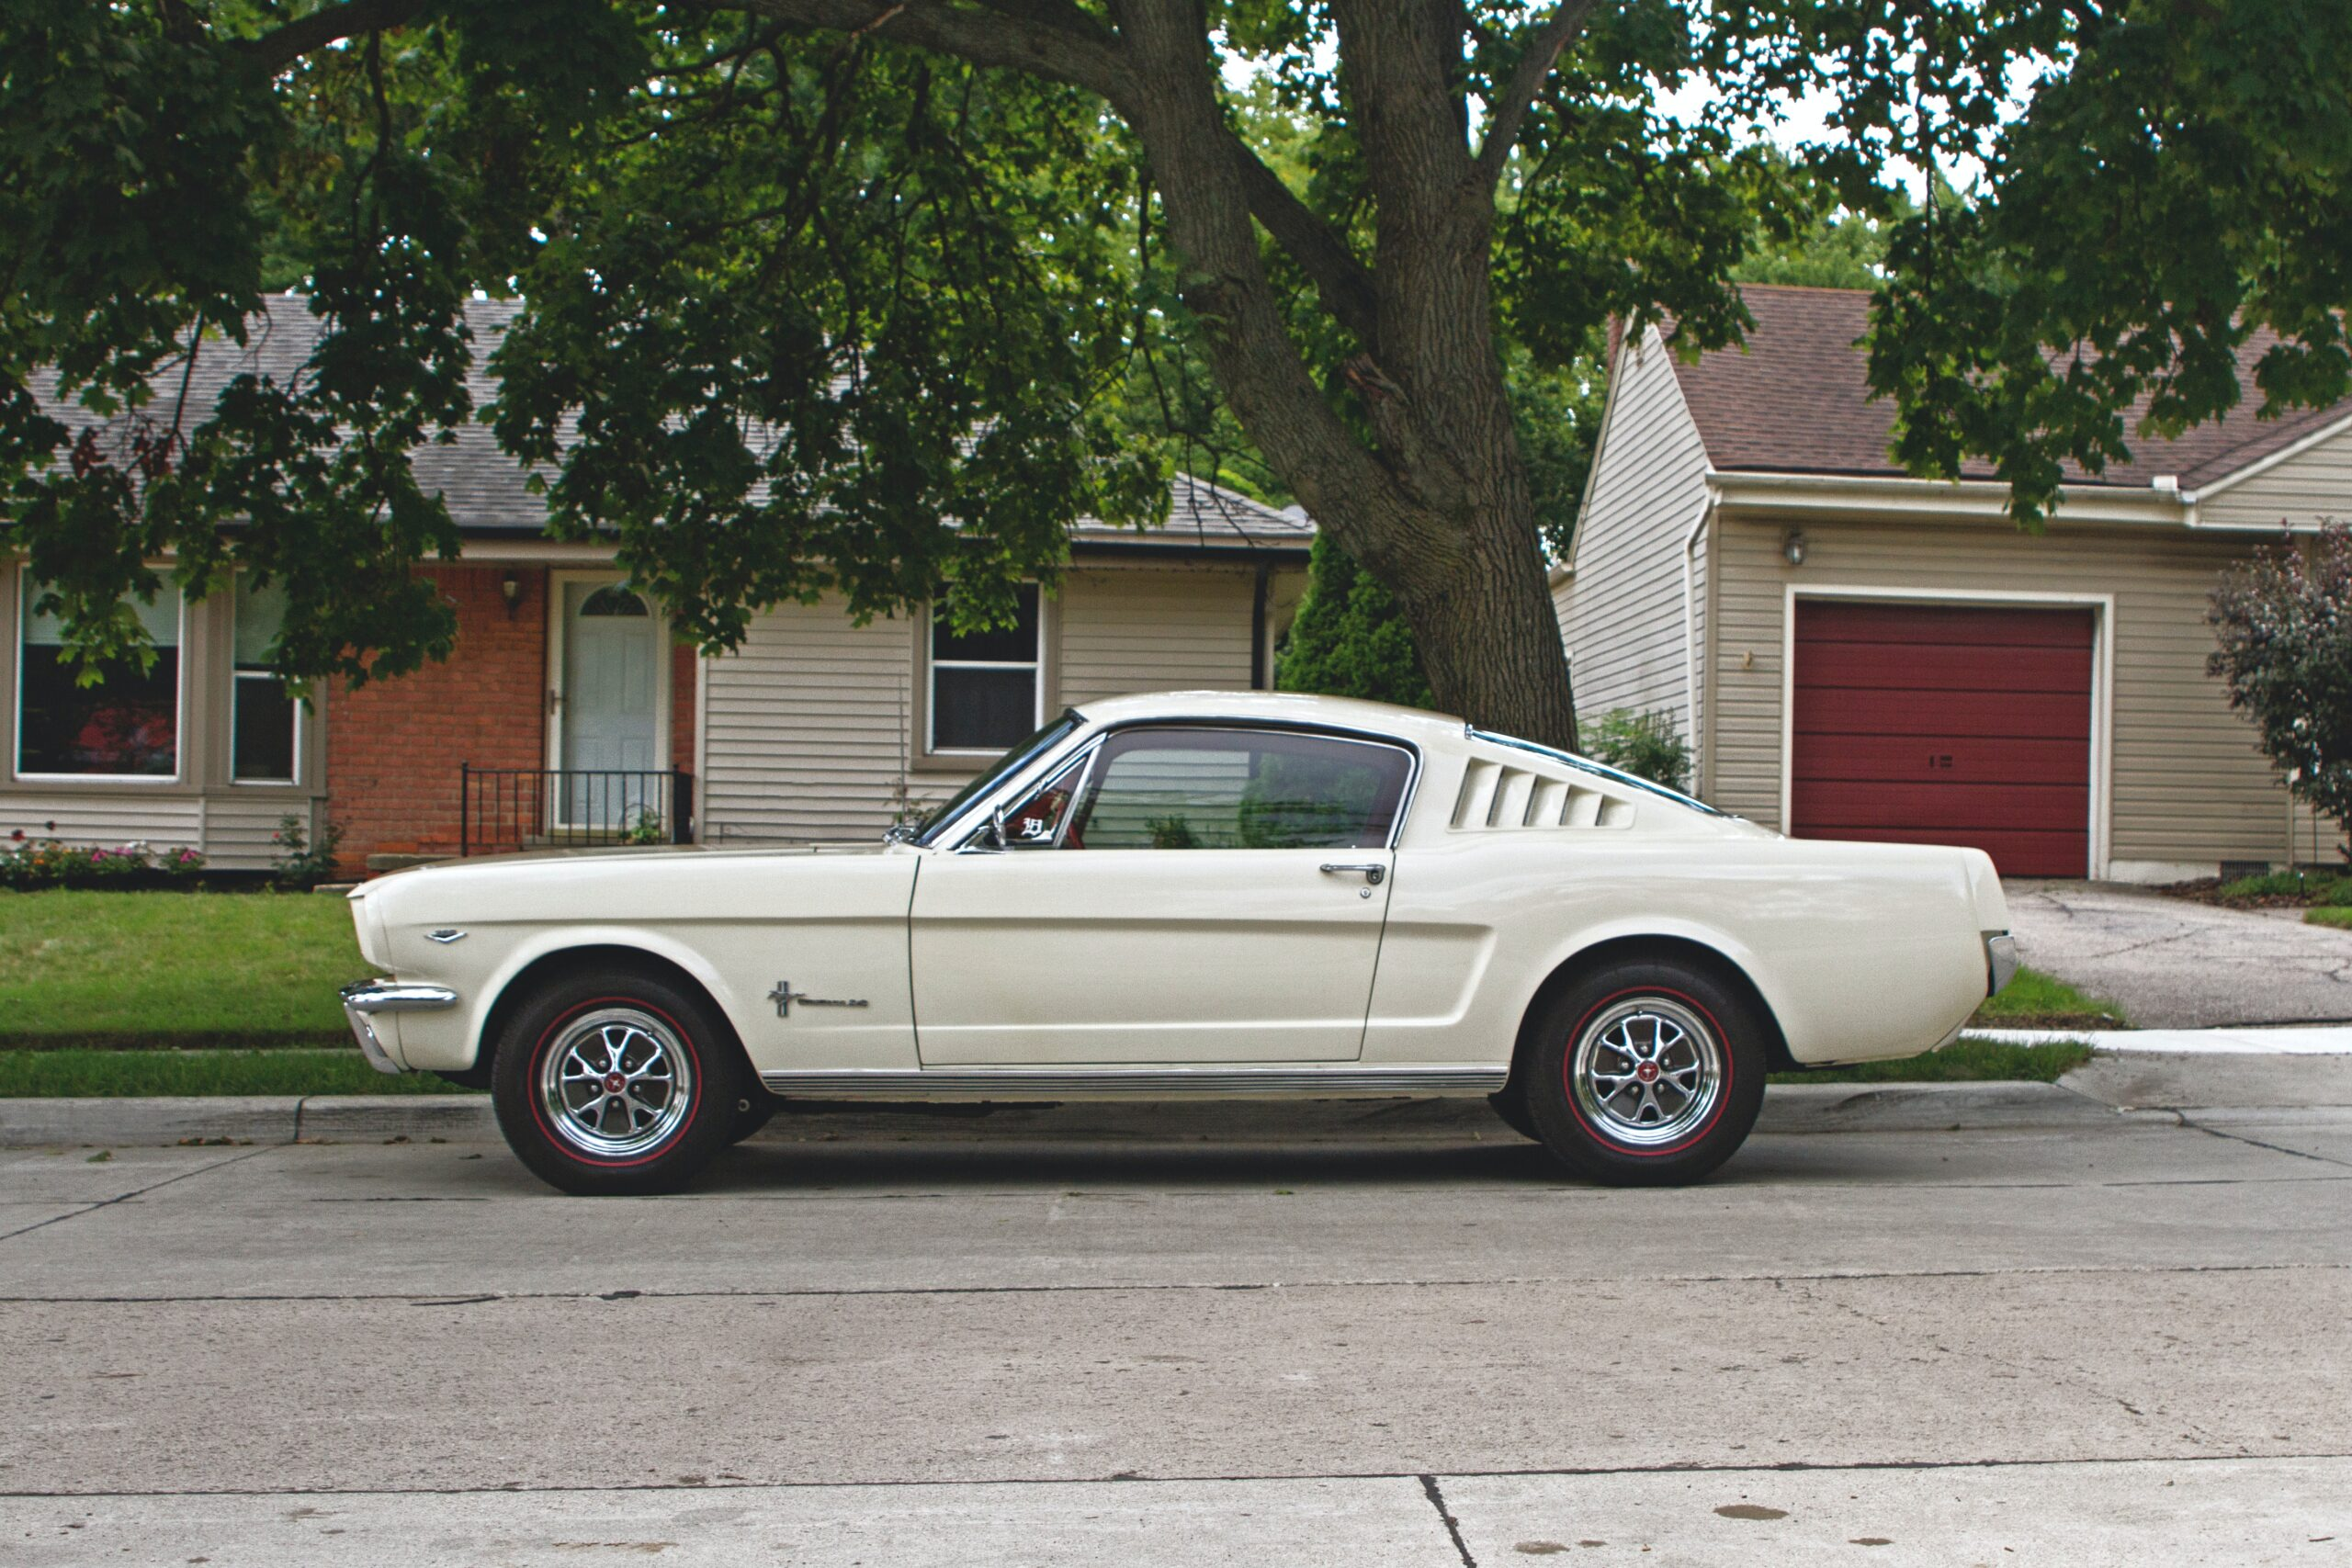 1967 mustang fastback in white